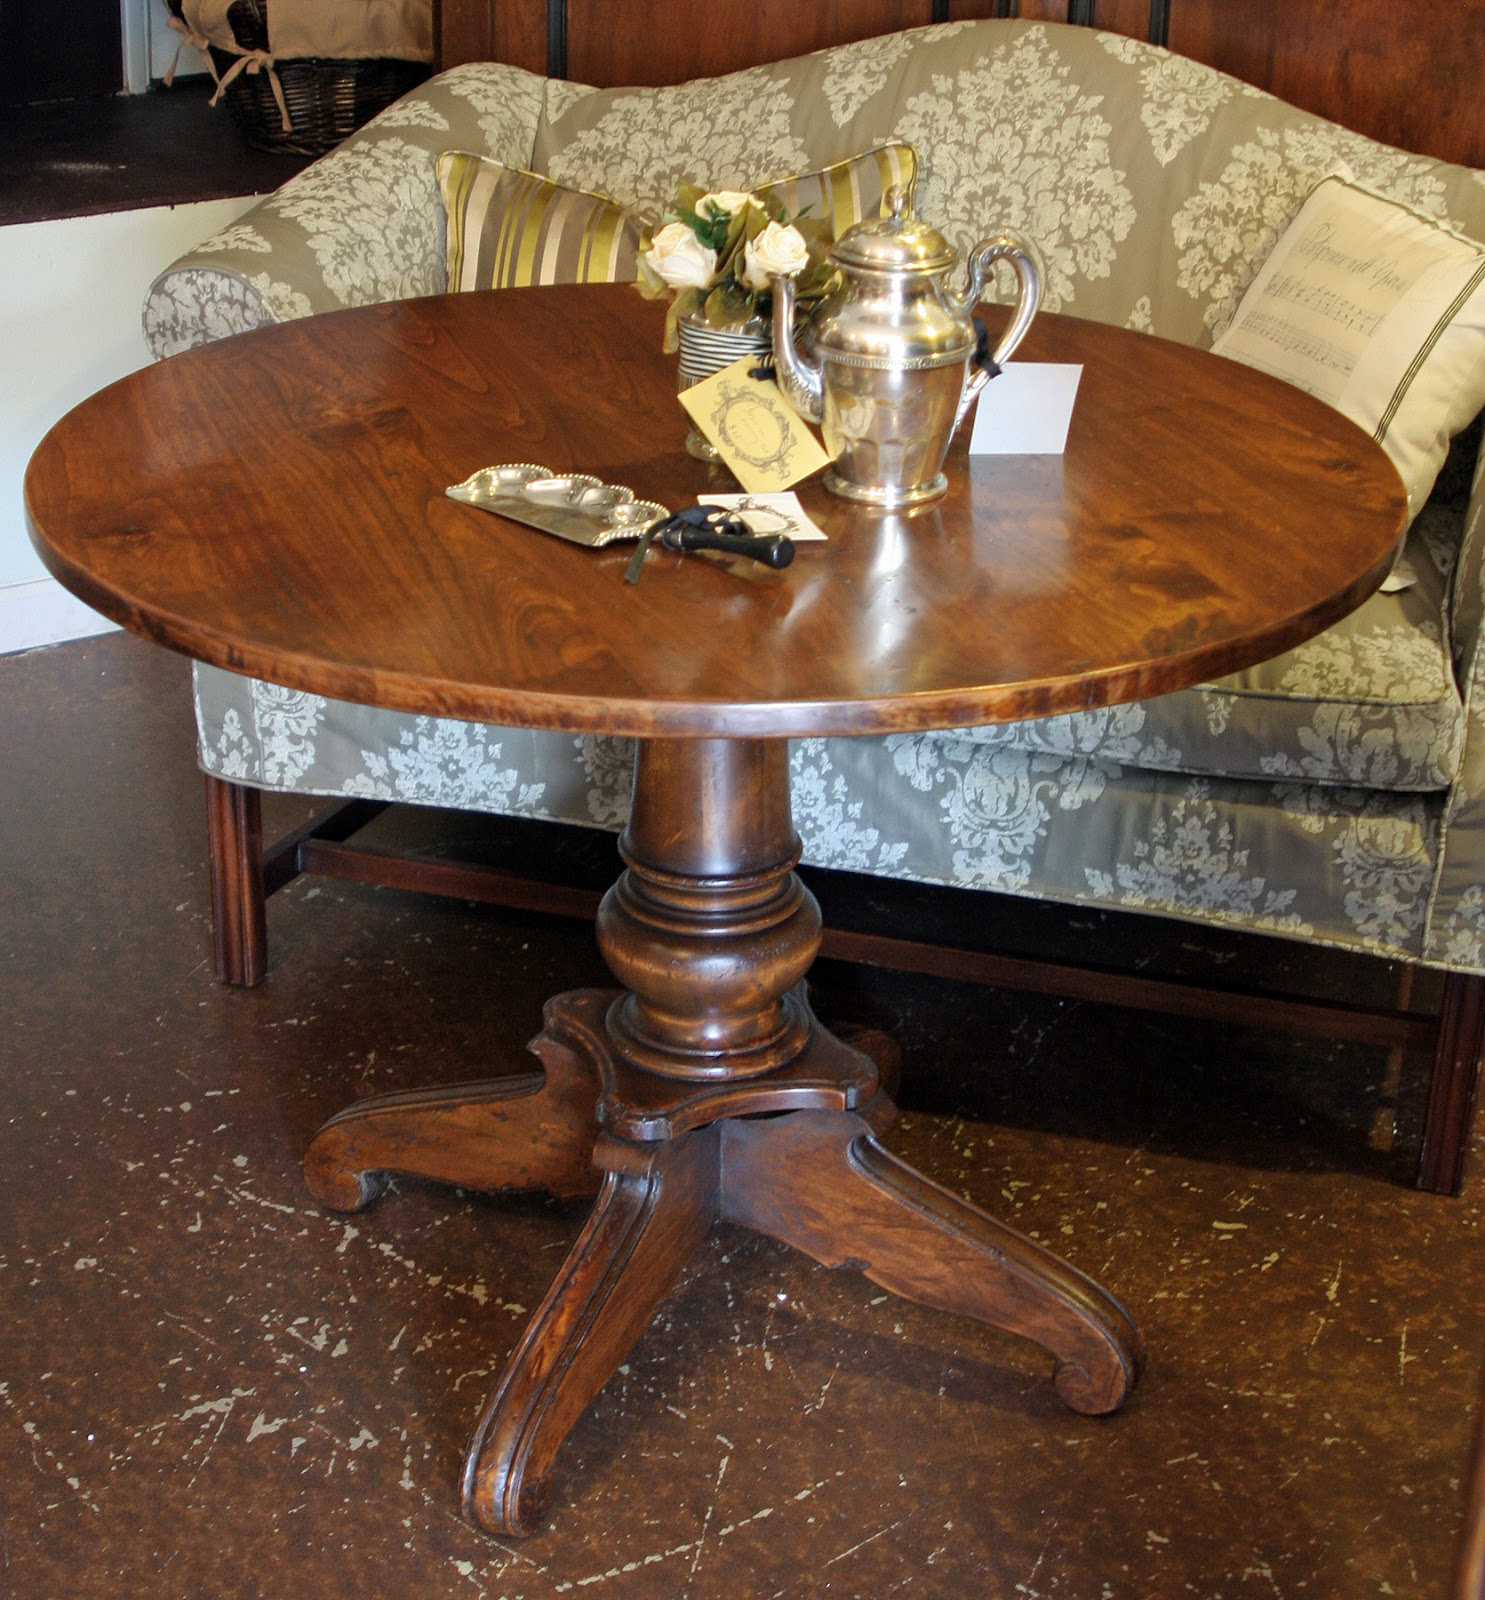 Kitchen Tables Portland Oregon Inventia Design 345 French Provincial Round Dining Table With